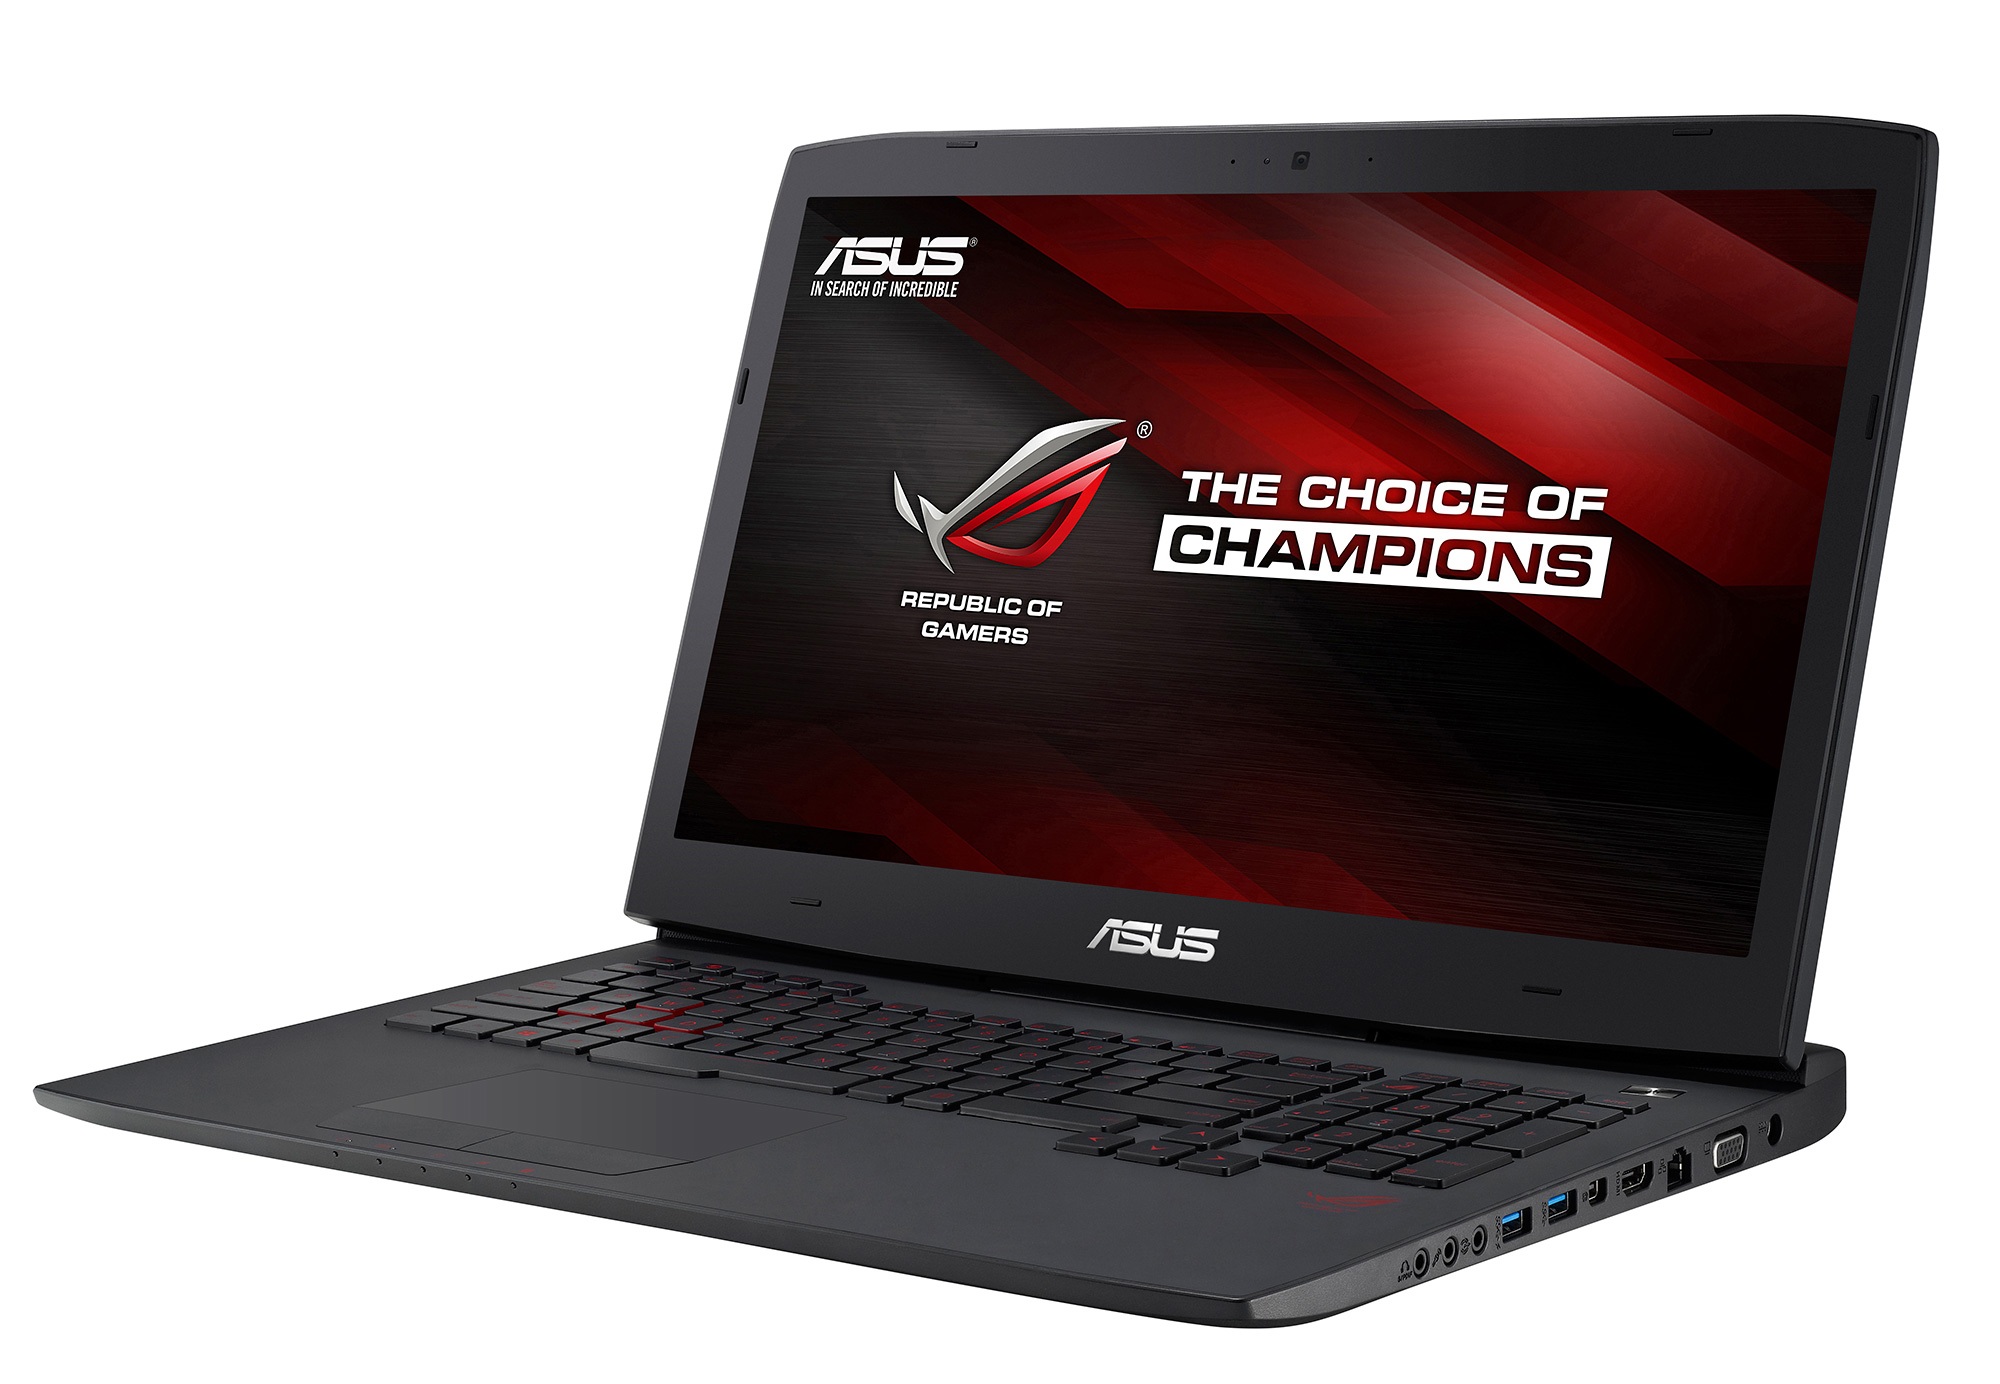 ASUS ROG G751JT NVIDIA Graphics Drivers for PC